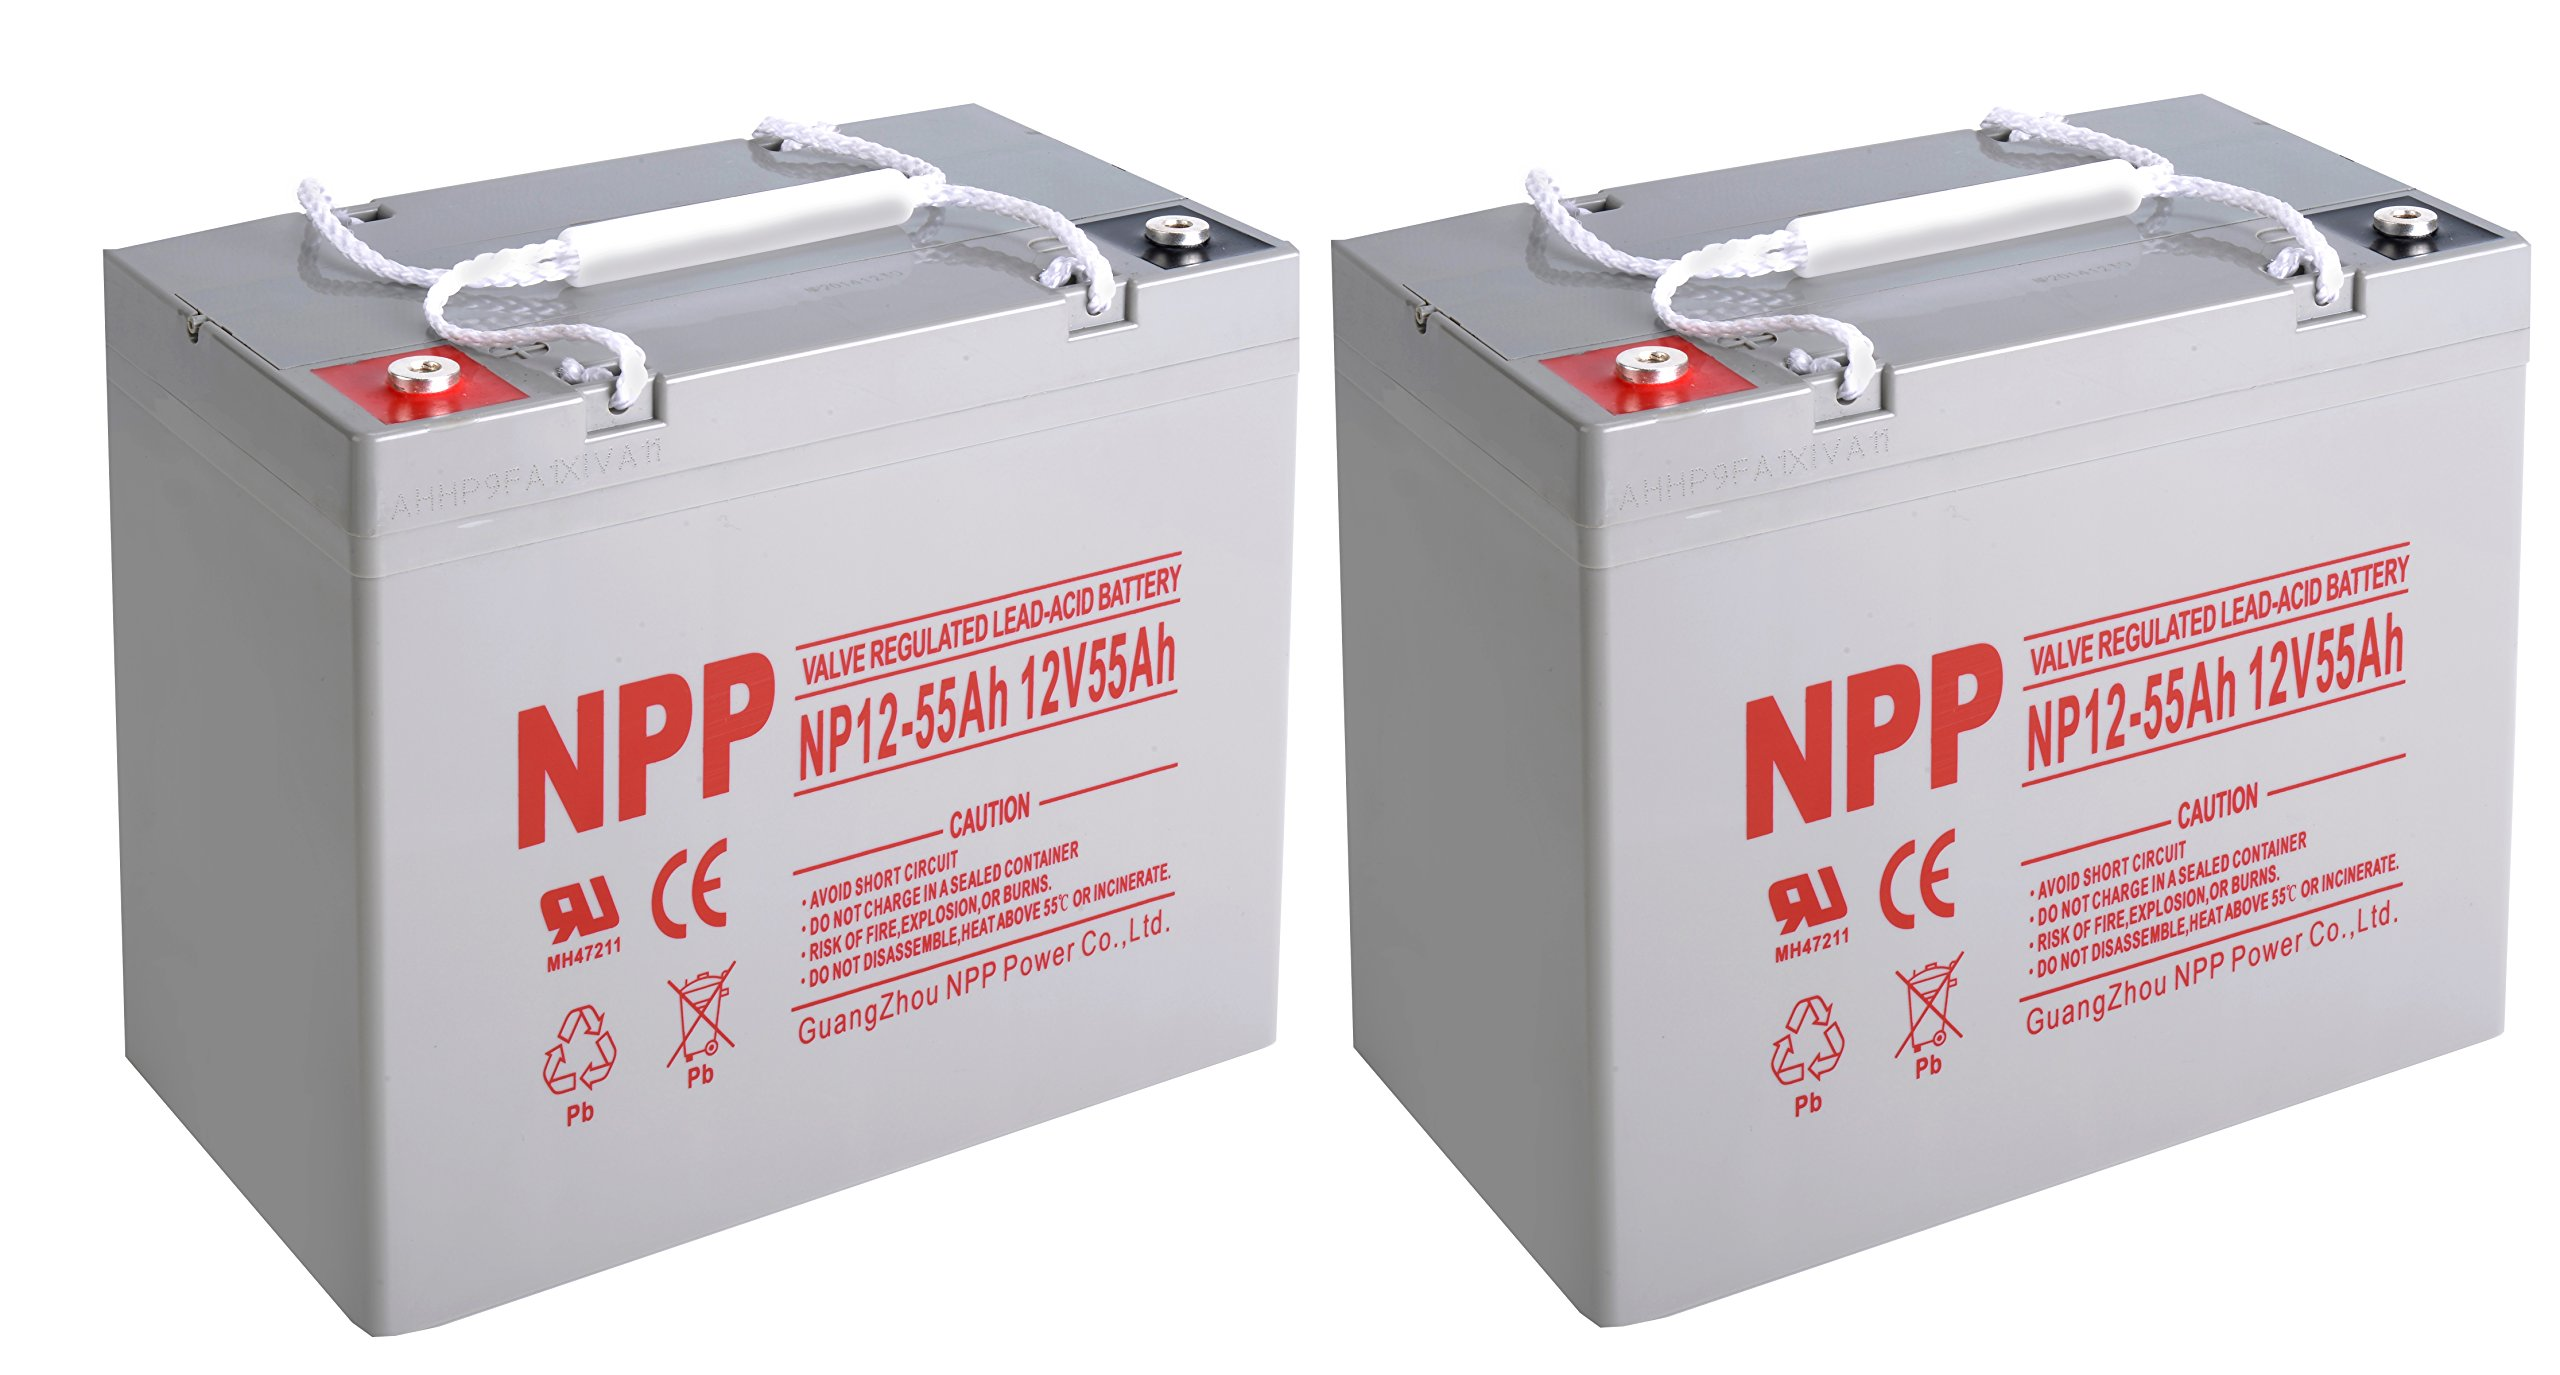 NPP 12V 55 Amp NP12 55Ah Rechargeable Lead Acid Battery With Button Style Terminals / Pack 2